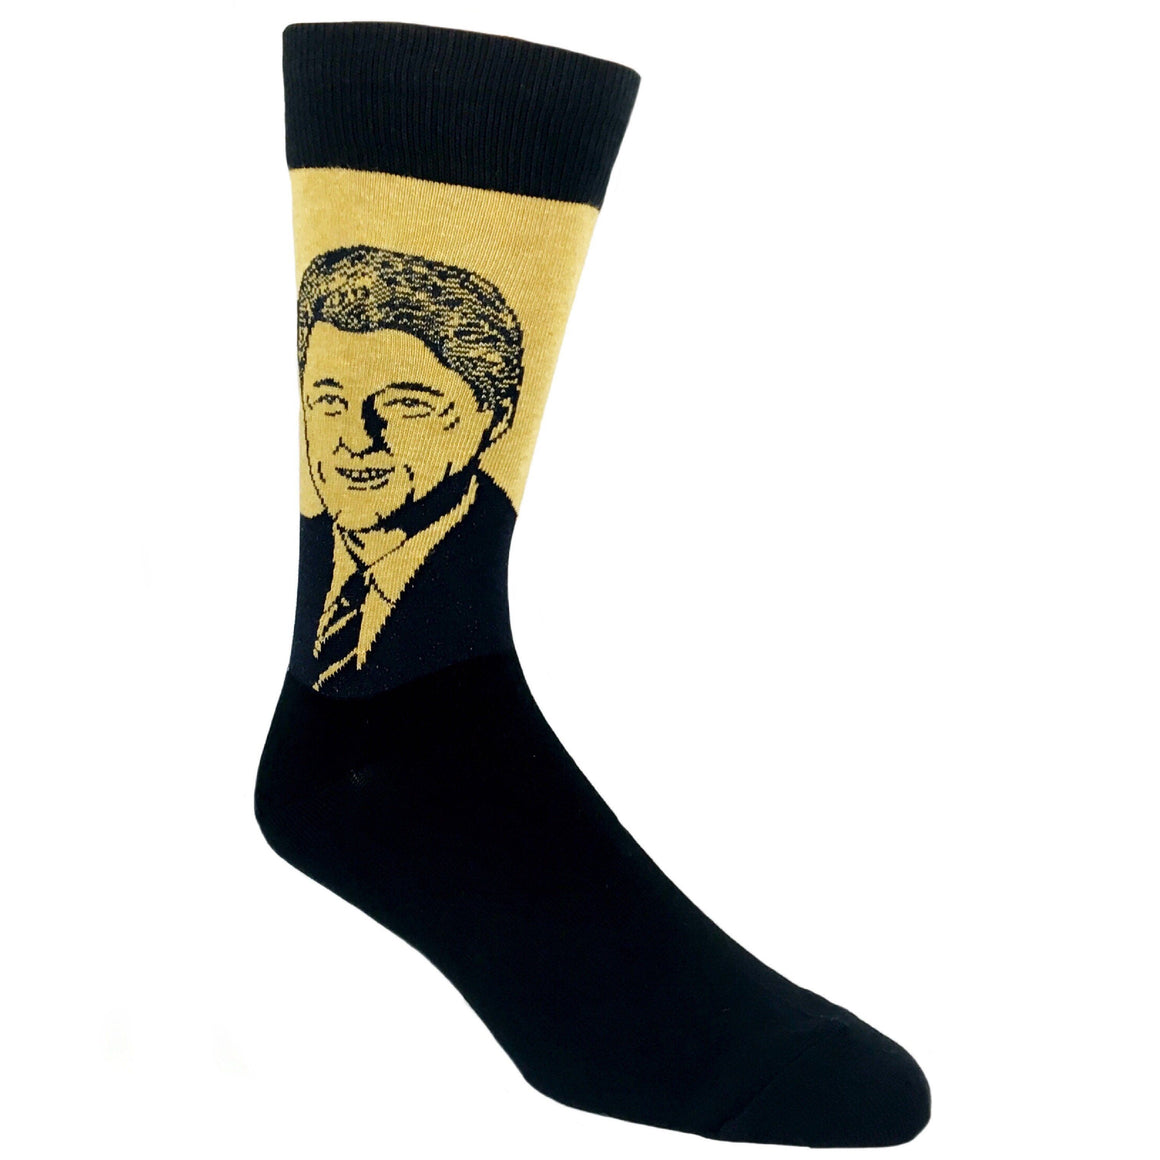 Bill Clinton Socks in Green by SockSmith - The Sock Spot